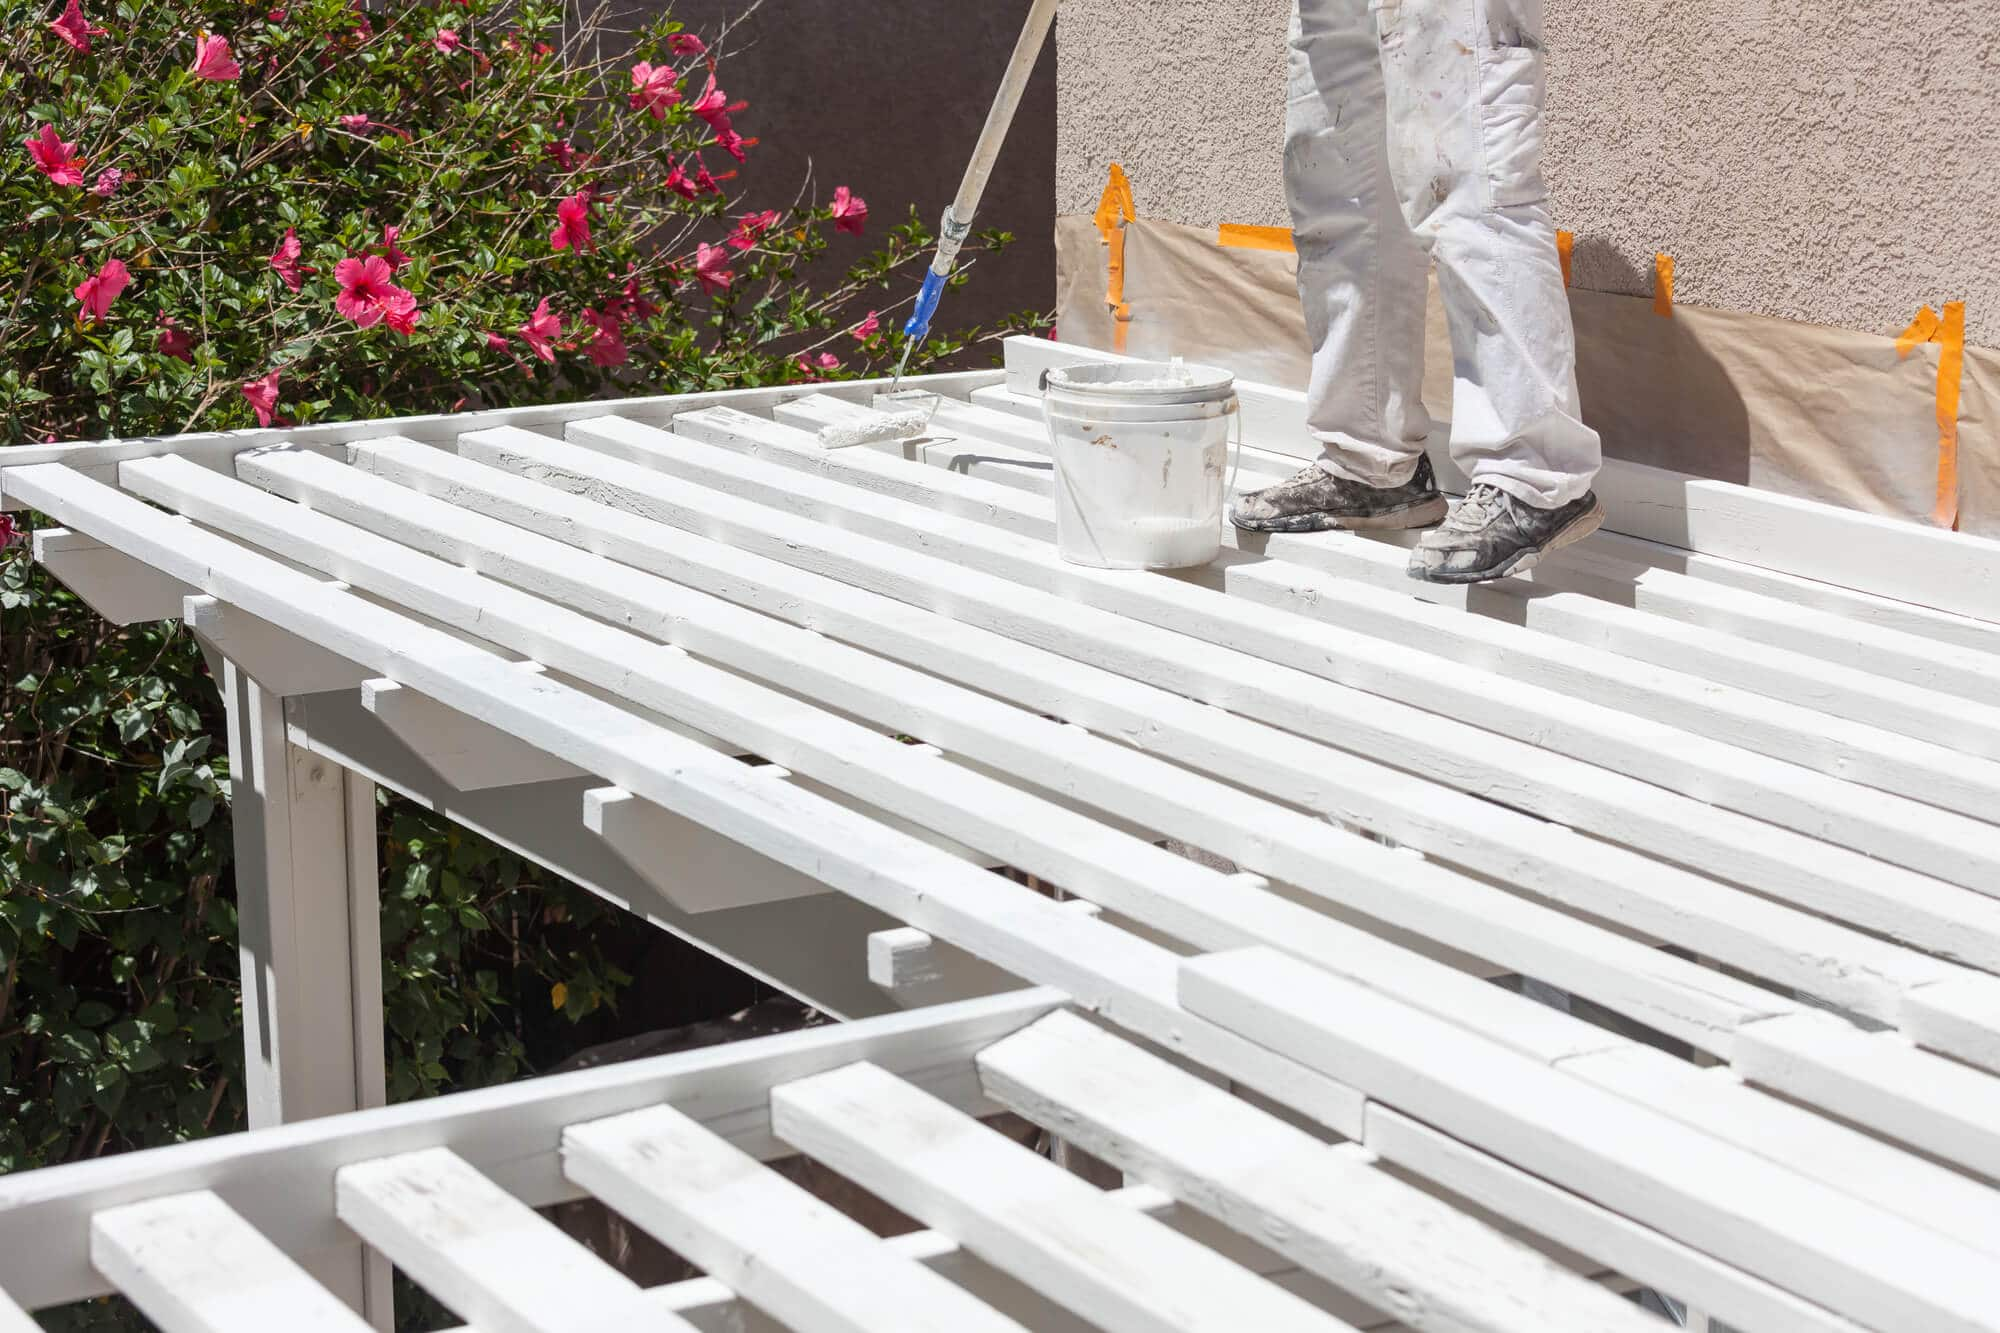 How high should a patio cover be - Big Easy Fences